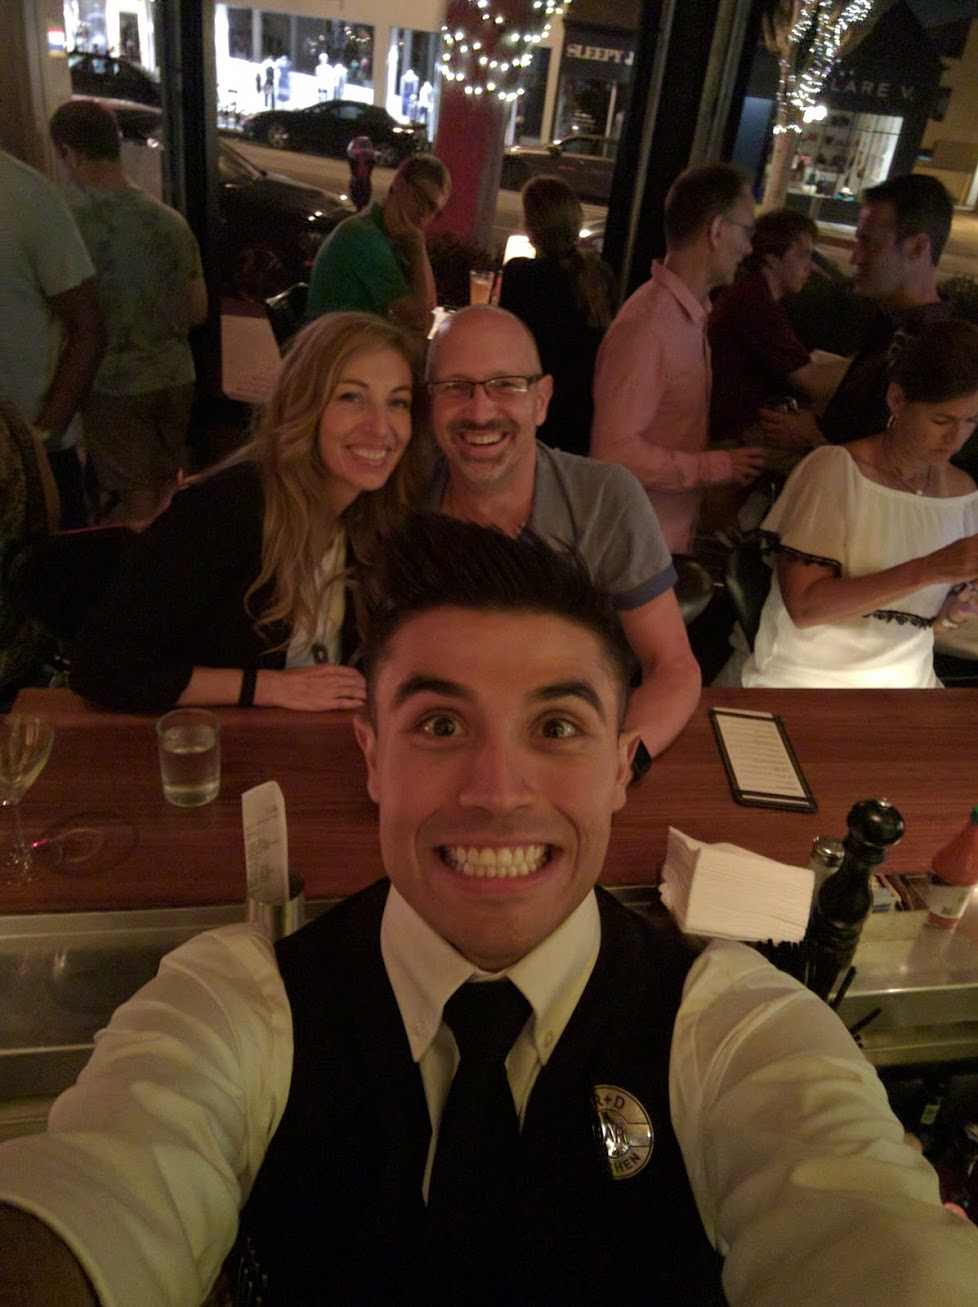 By sitting at the bar we interacted with the friendly staff, even getting our bartender to take an impromptu selfie.